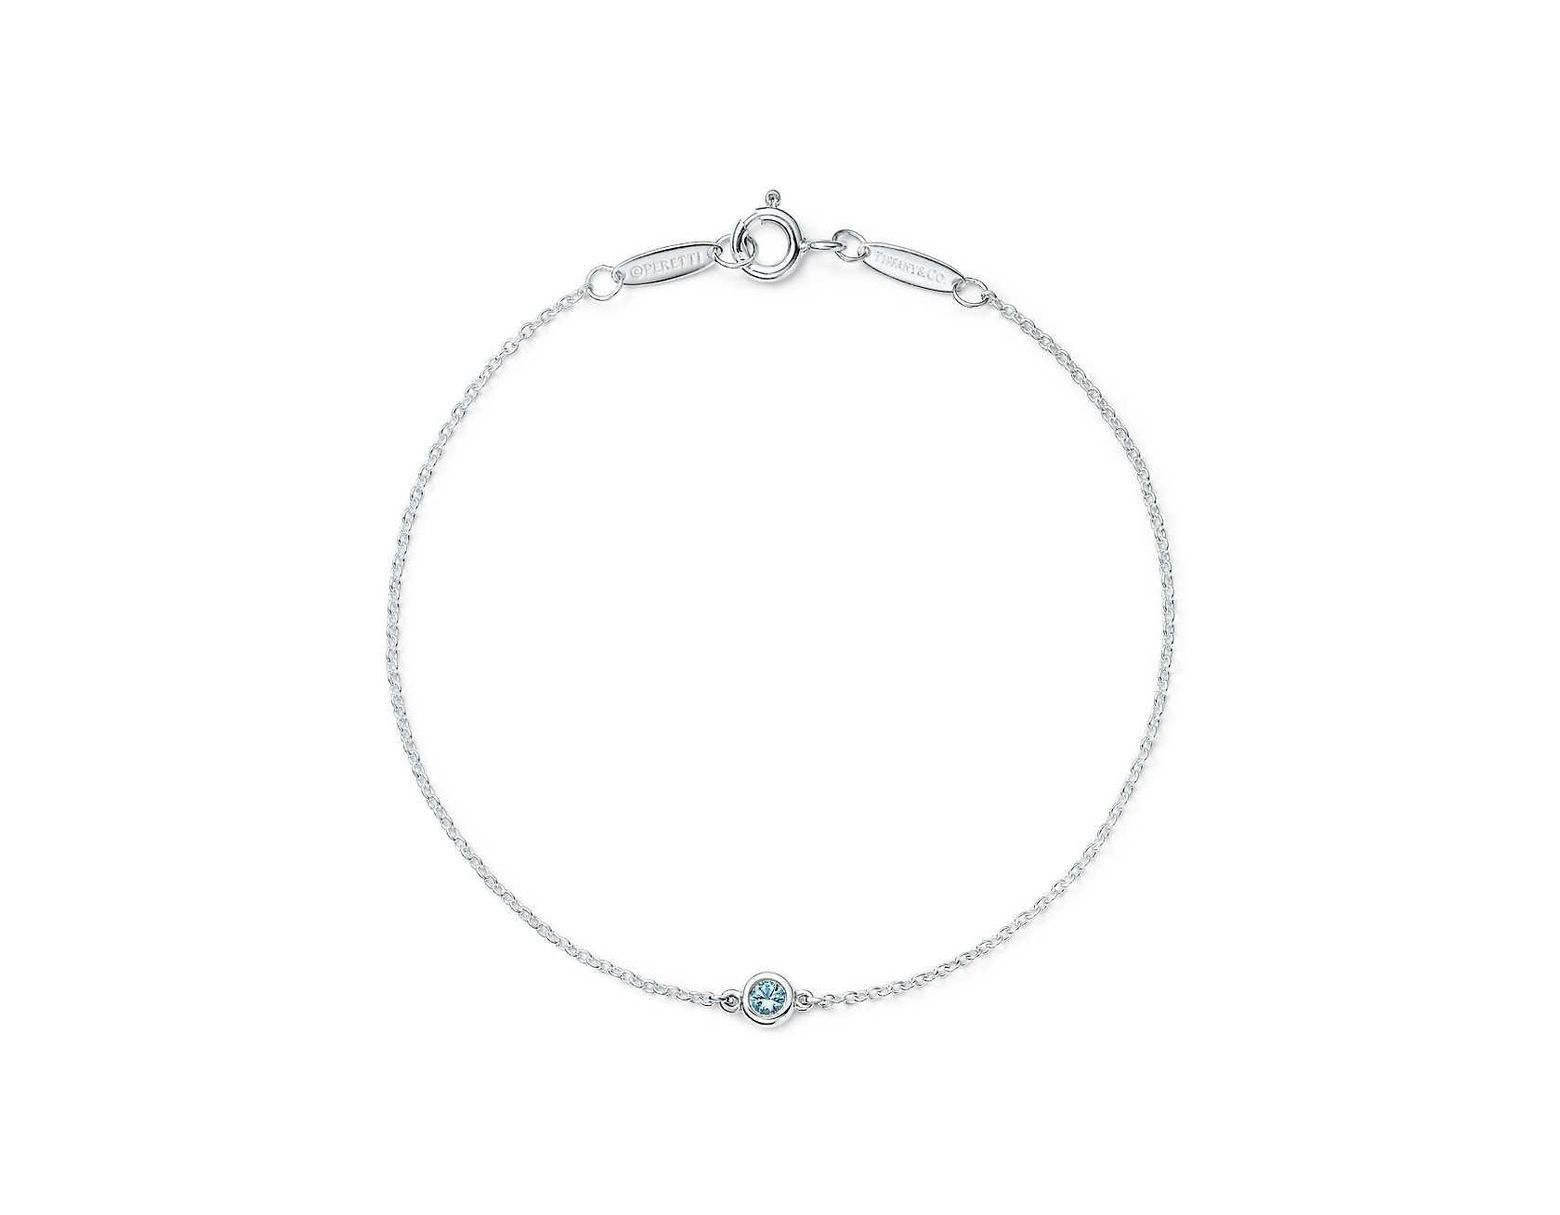 8b7b631c4 Tiffany & Co. Elsa Peretti® Color By The Yard Bracelet In Sterling Silver  With An Aquamarine in Metallic - Lyst